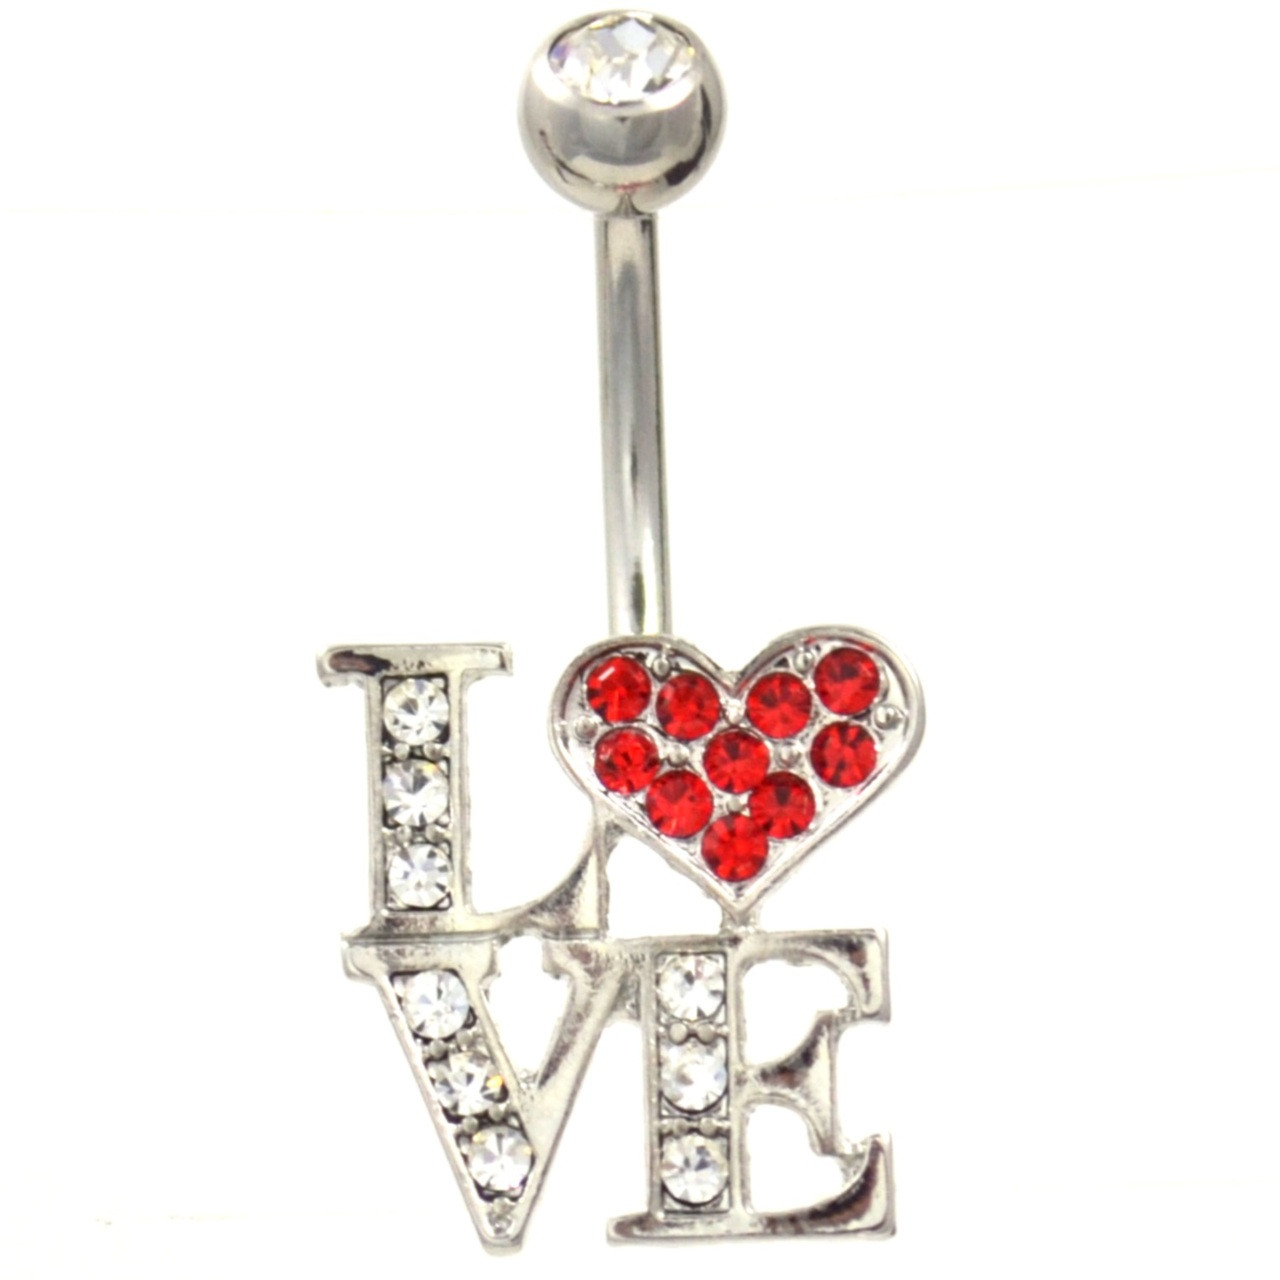 L O V E Gem Bedazzled Stainless Steel Belly Ring